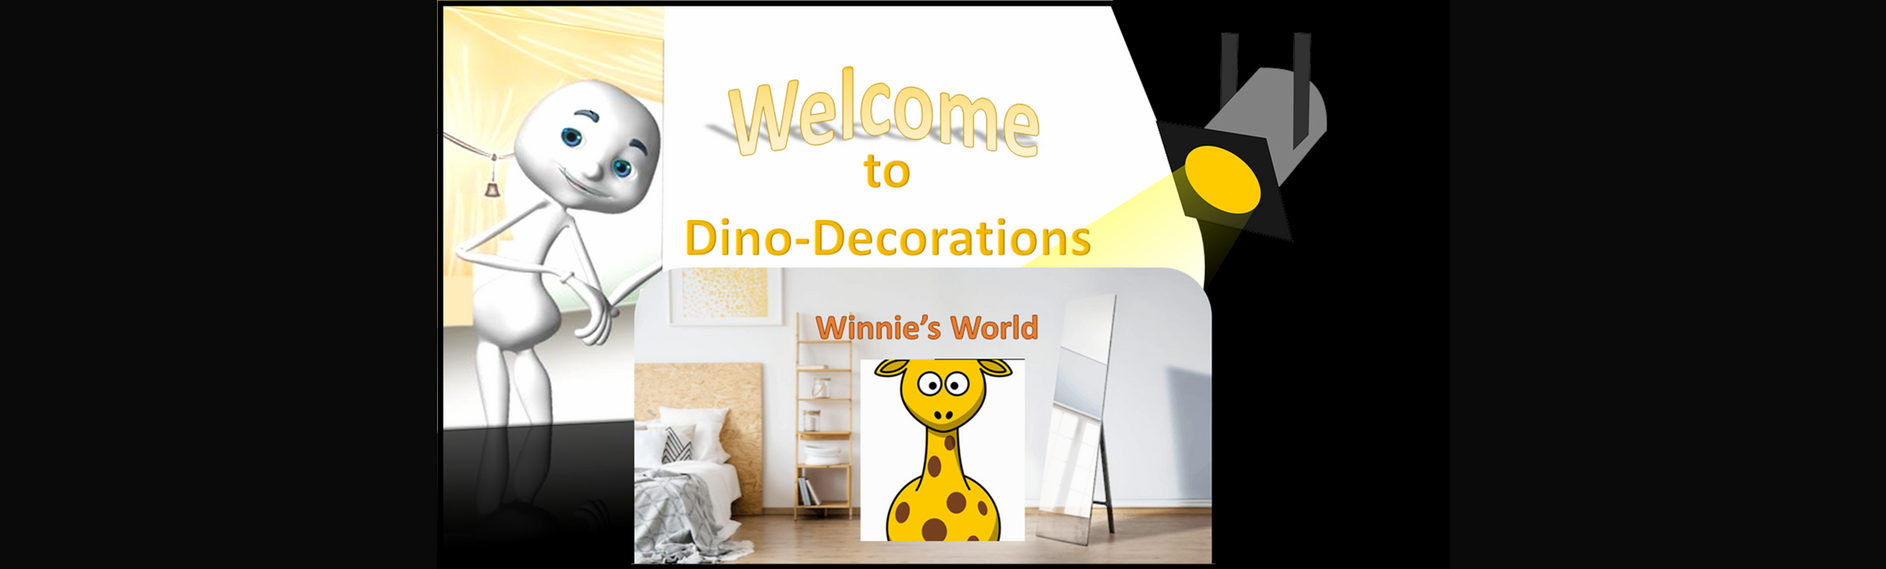 Dino Decorations.png